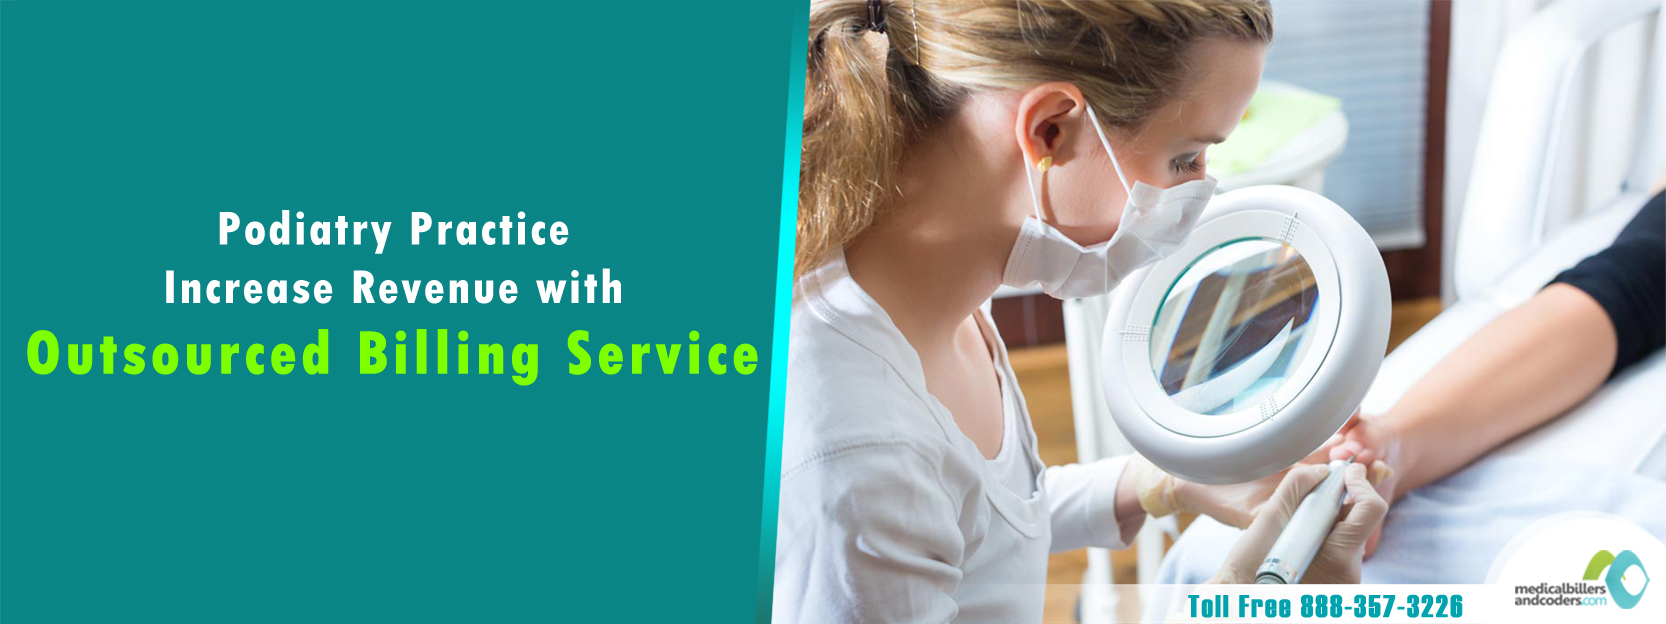 Podiatry-practice-increase-revenue-with-outsourced-billing-service.jpg